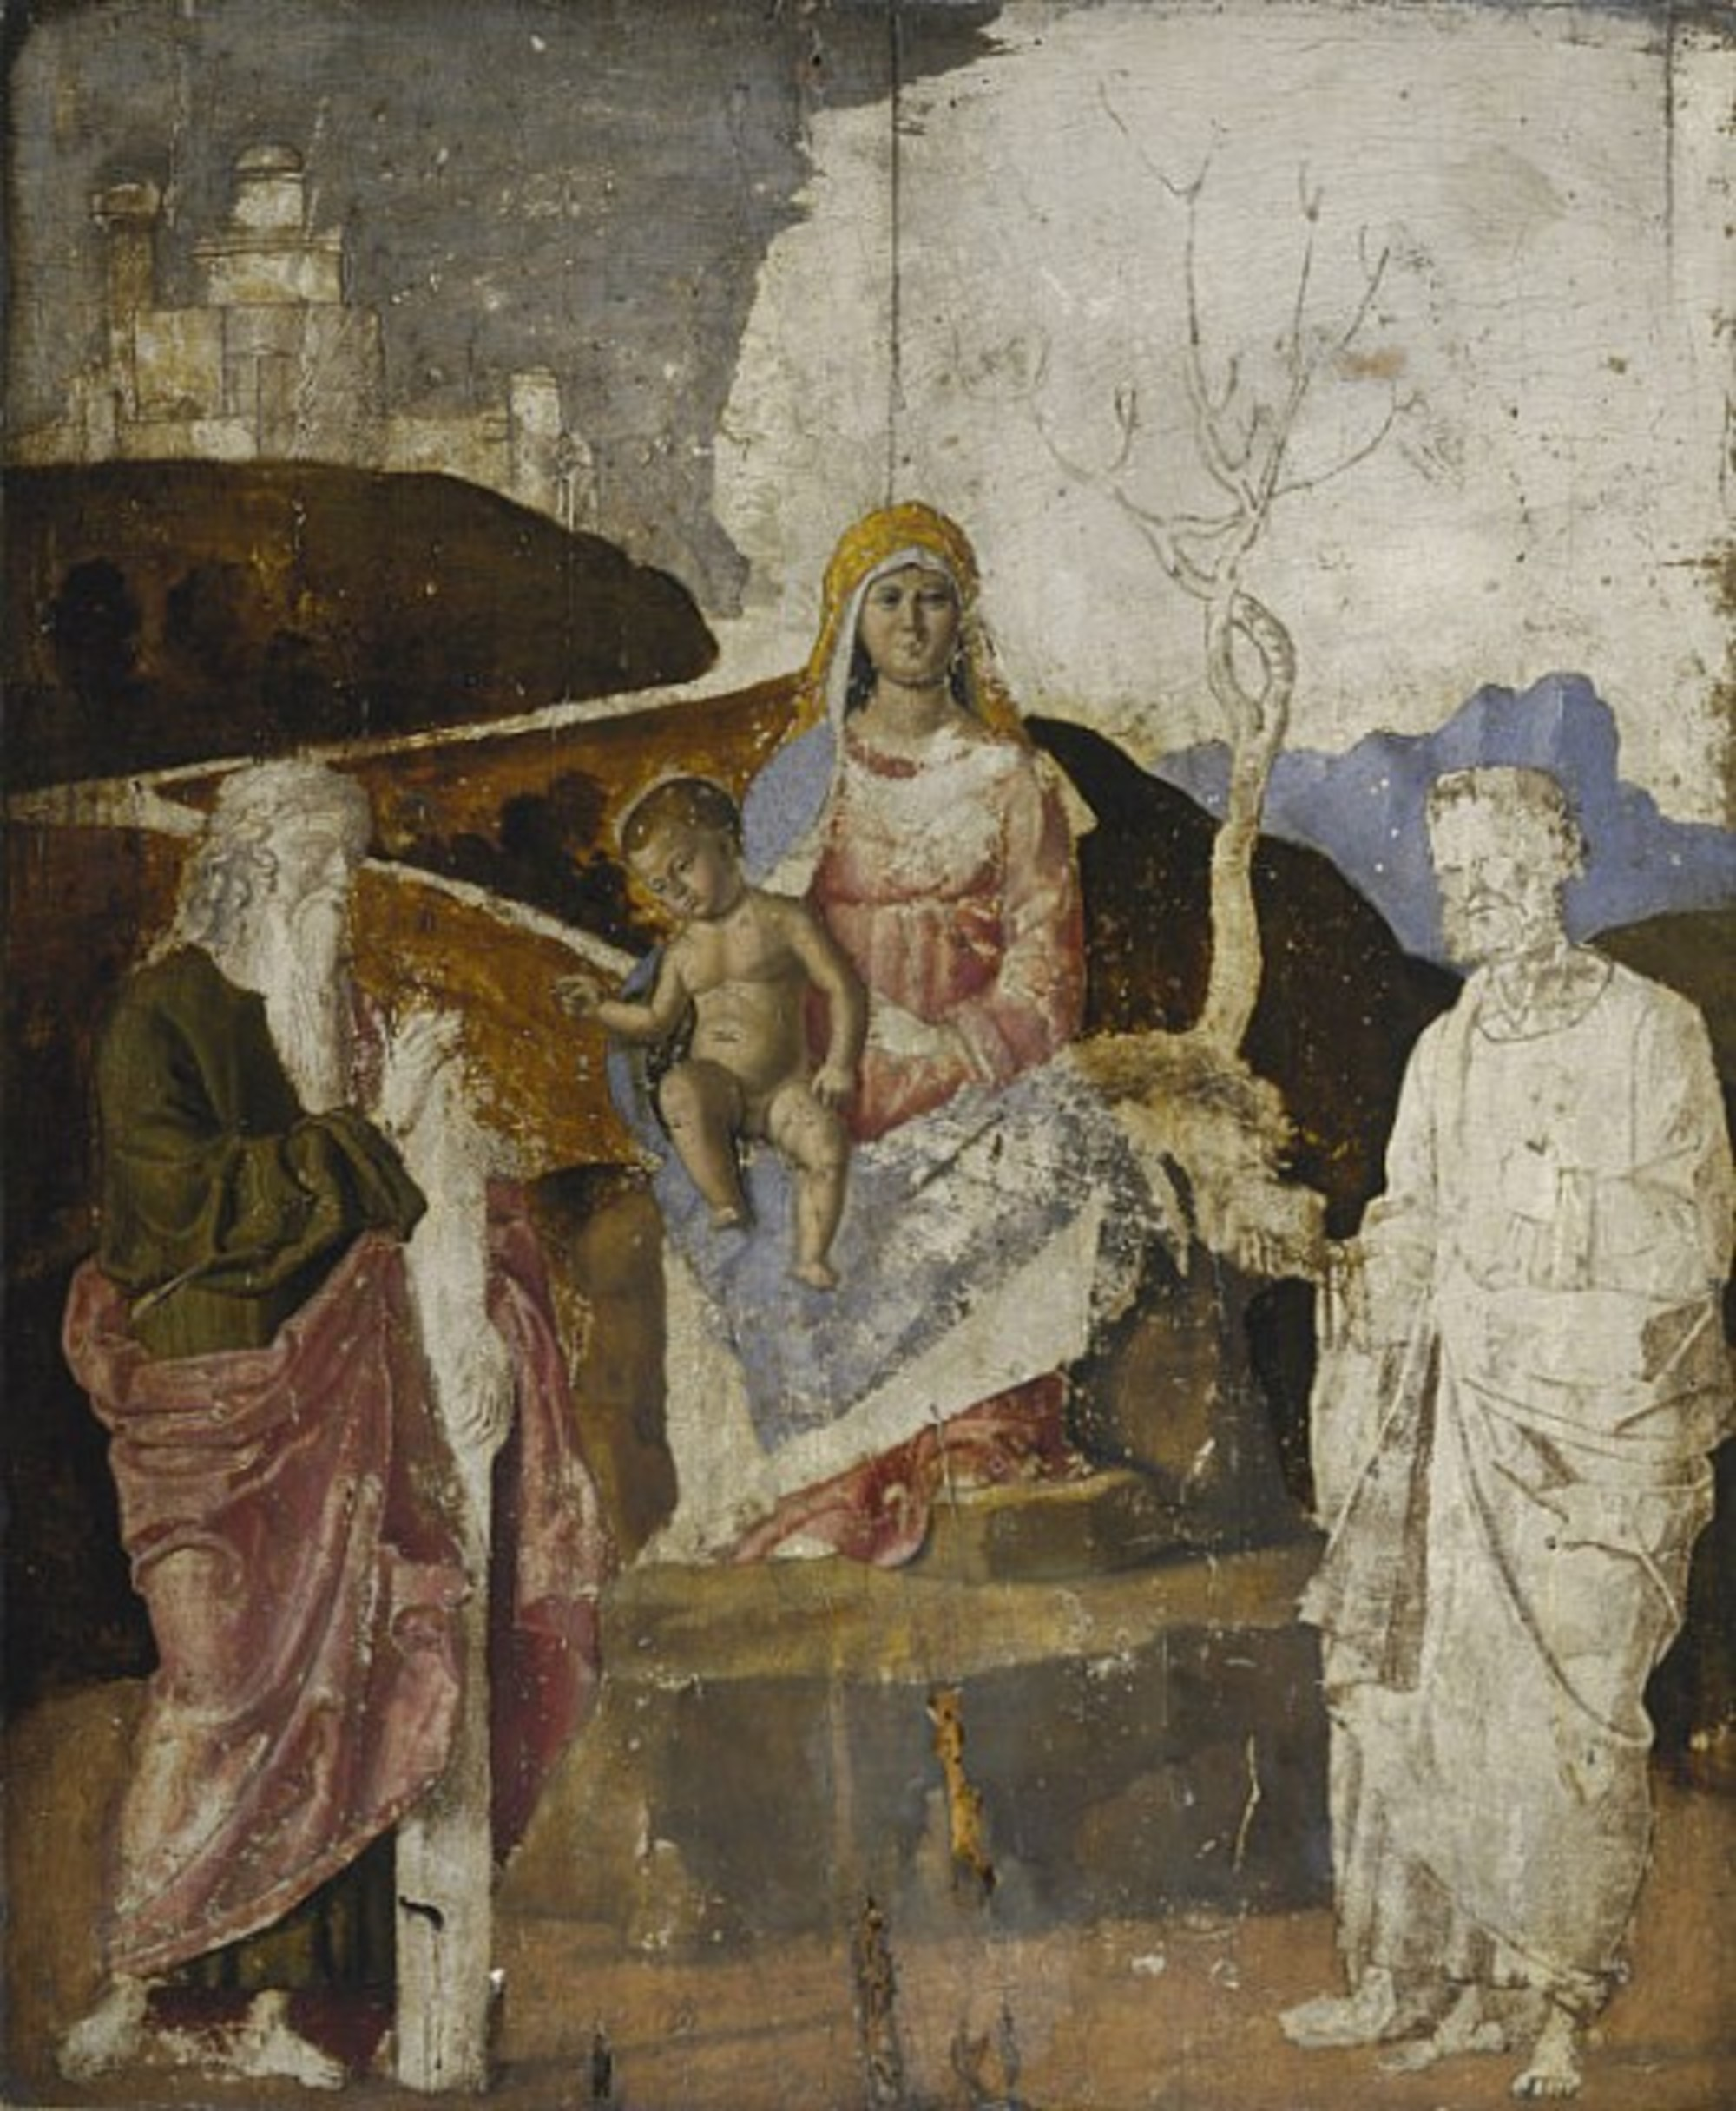 Cima-da-Conegliano-The-Virgin-and-Child-with-Saint-Andrew-and-Saint-Peter-15th16th-century-unfinished.jpg